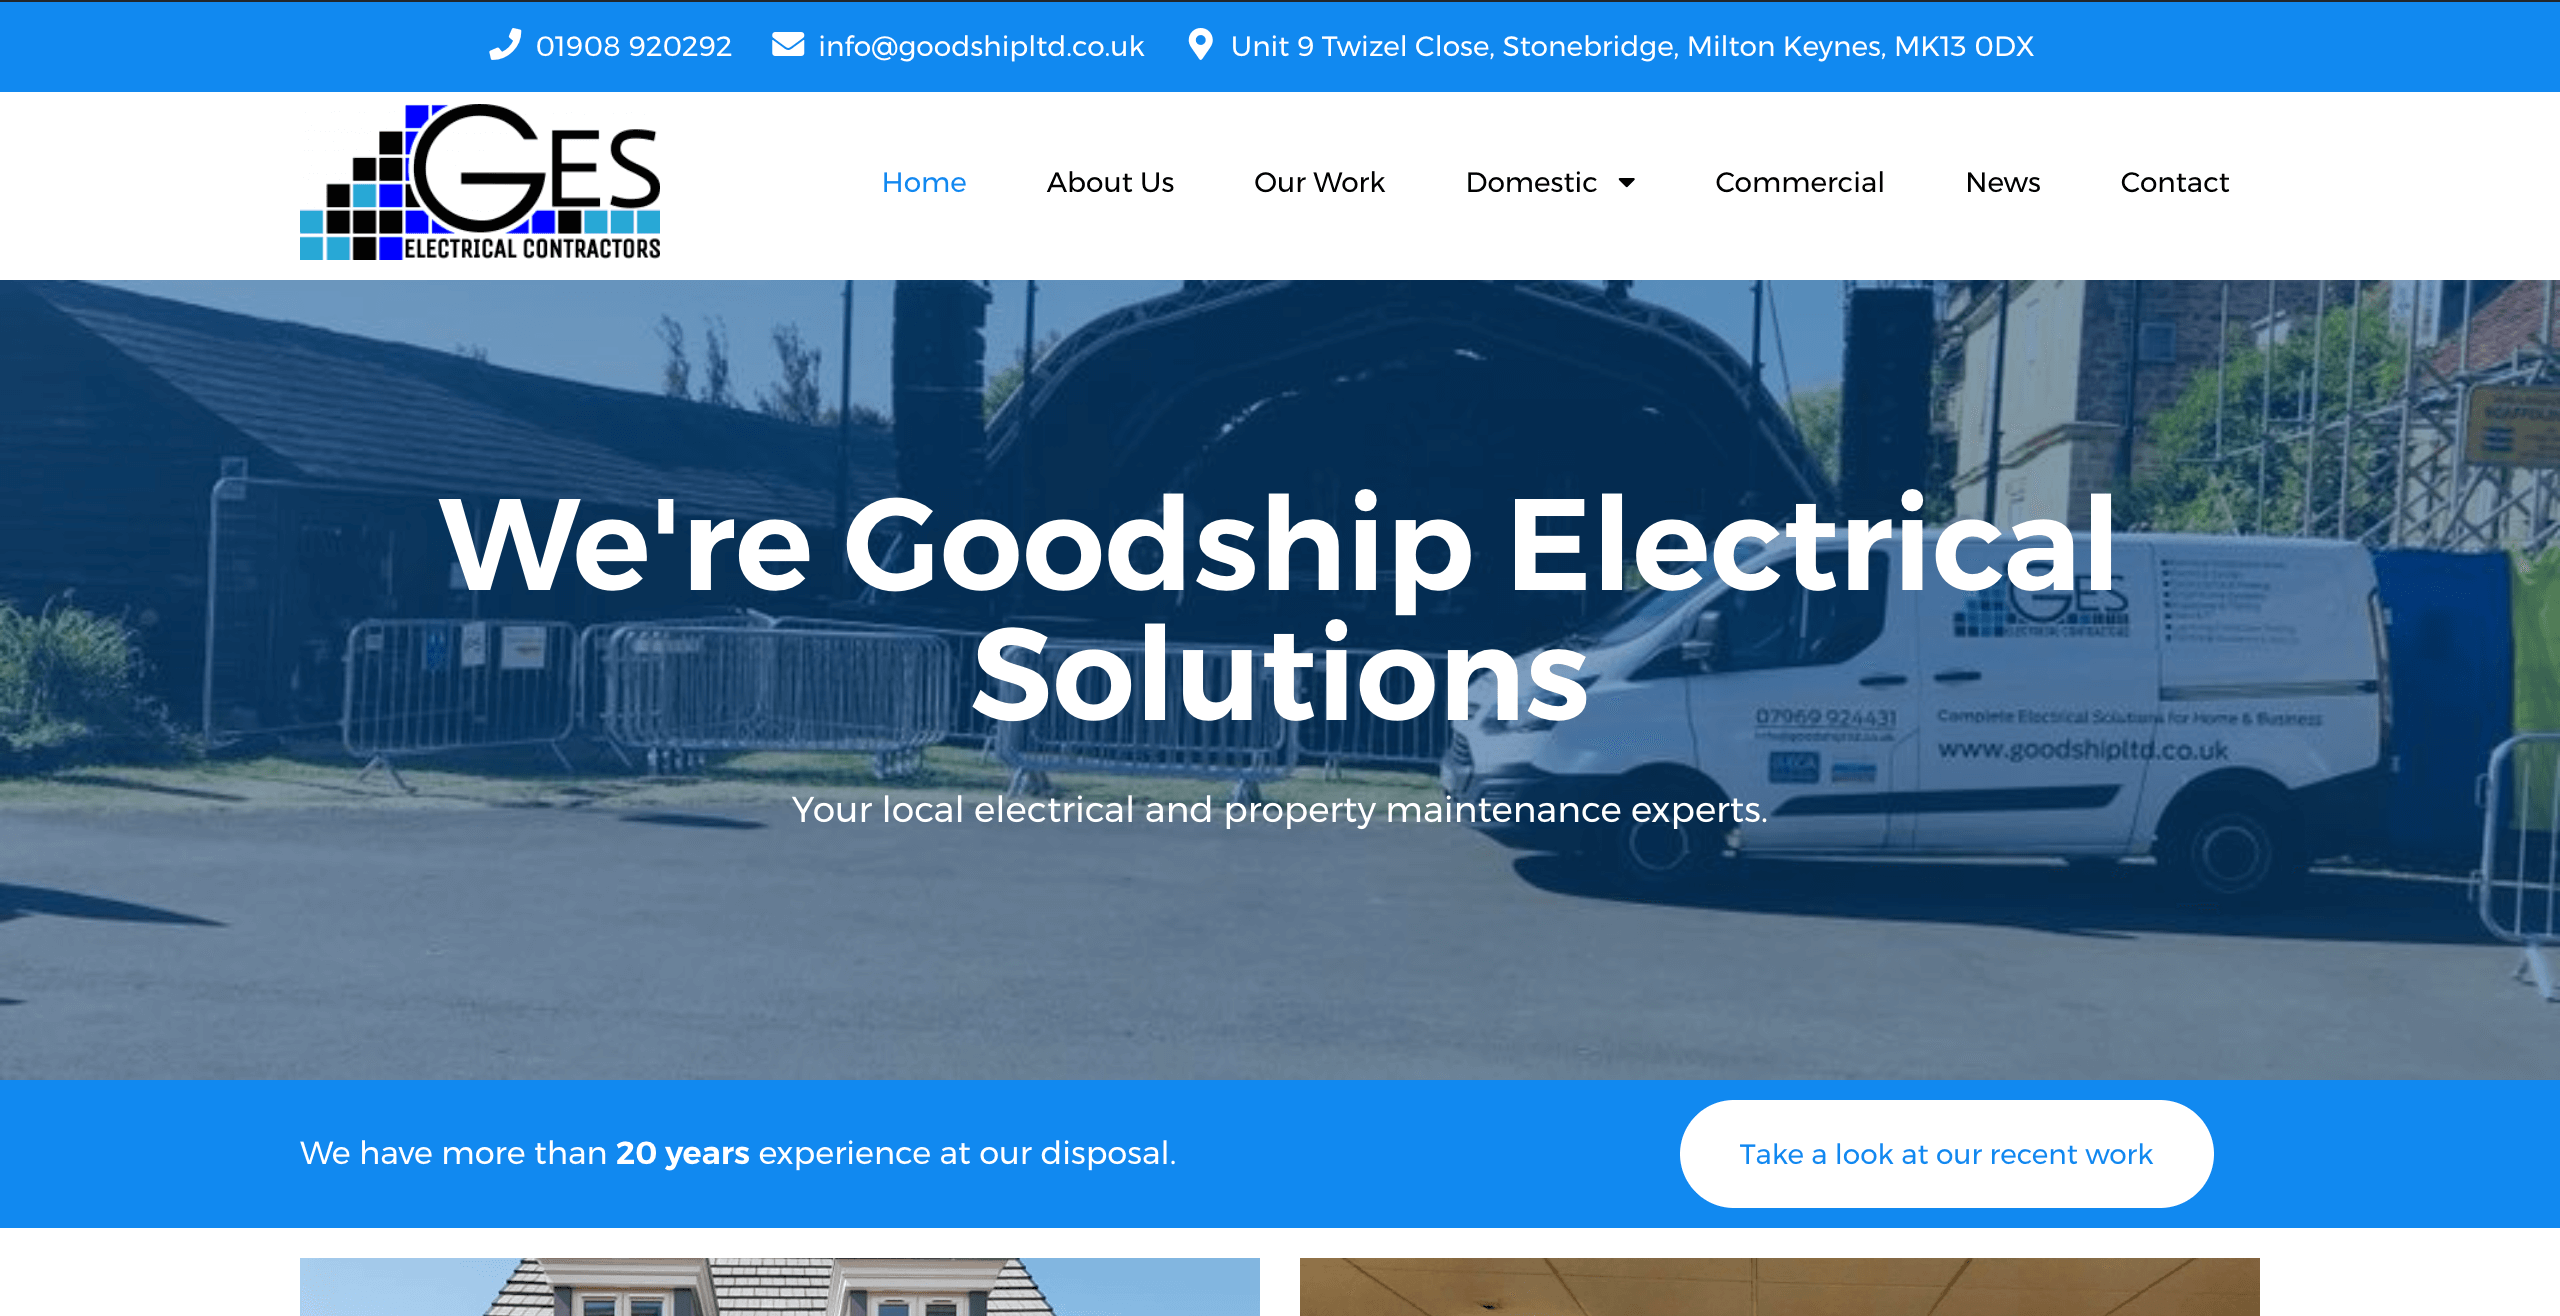 Welcome to the new GES Ltd website